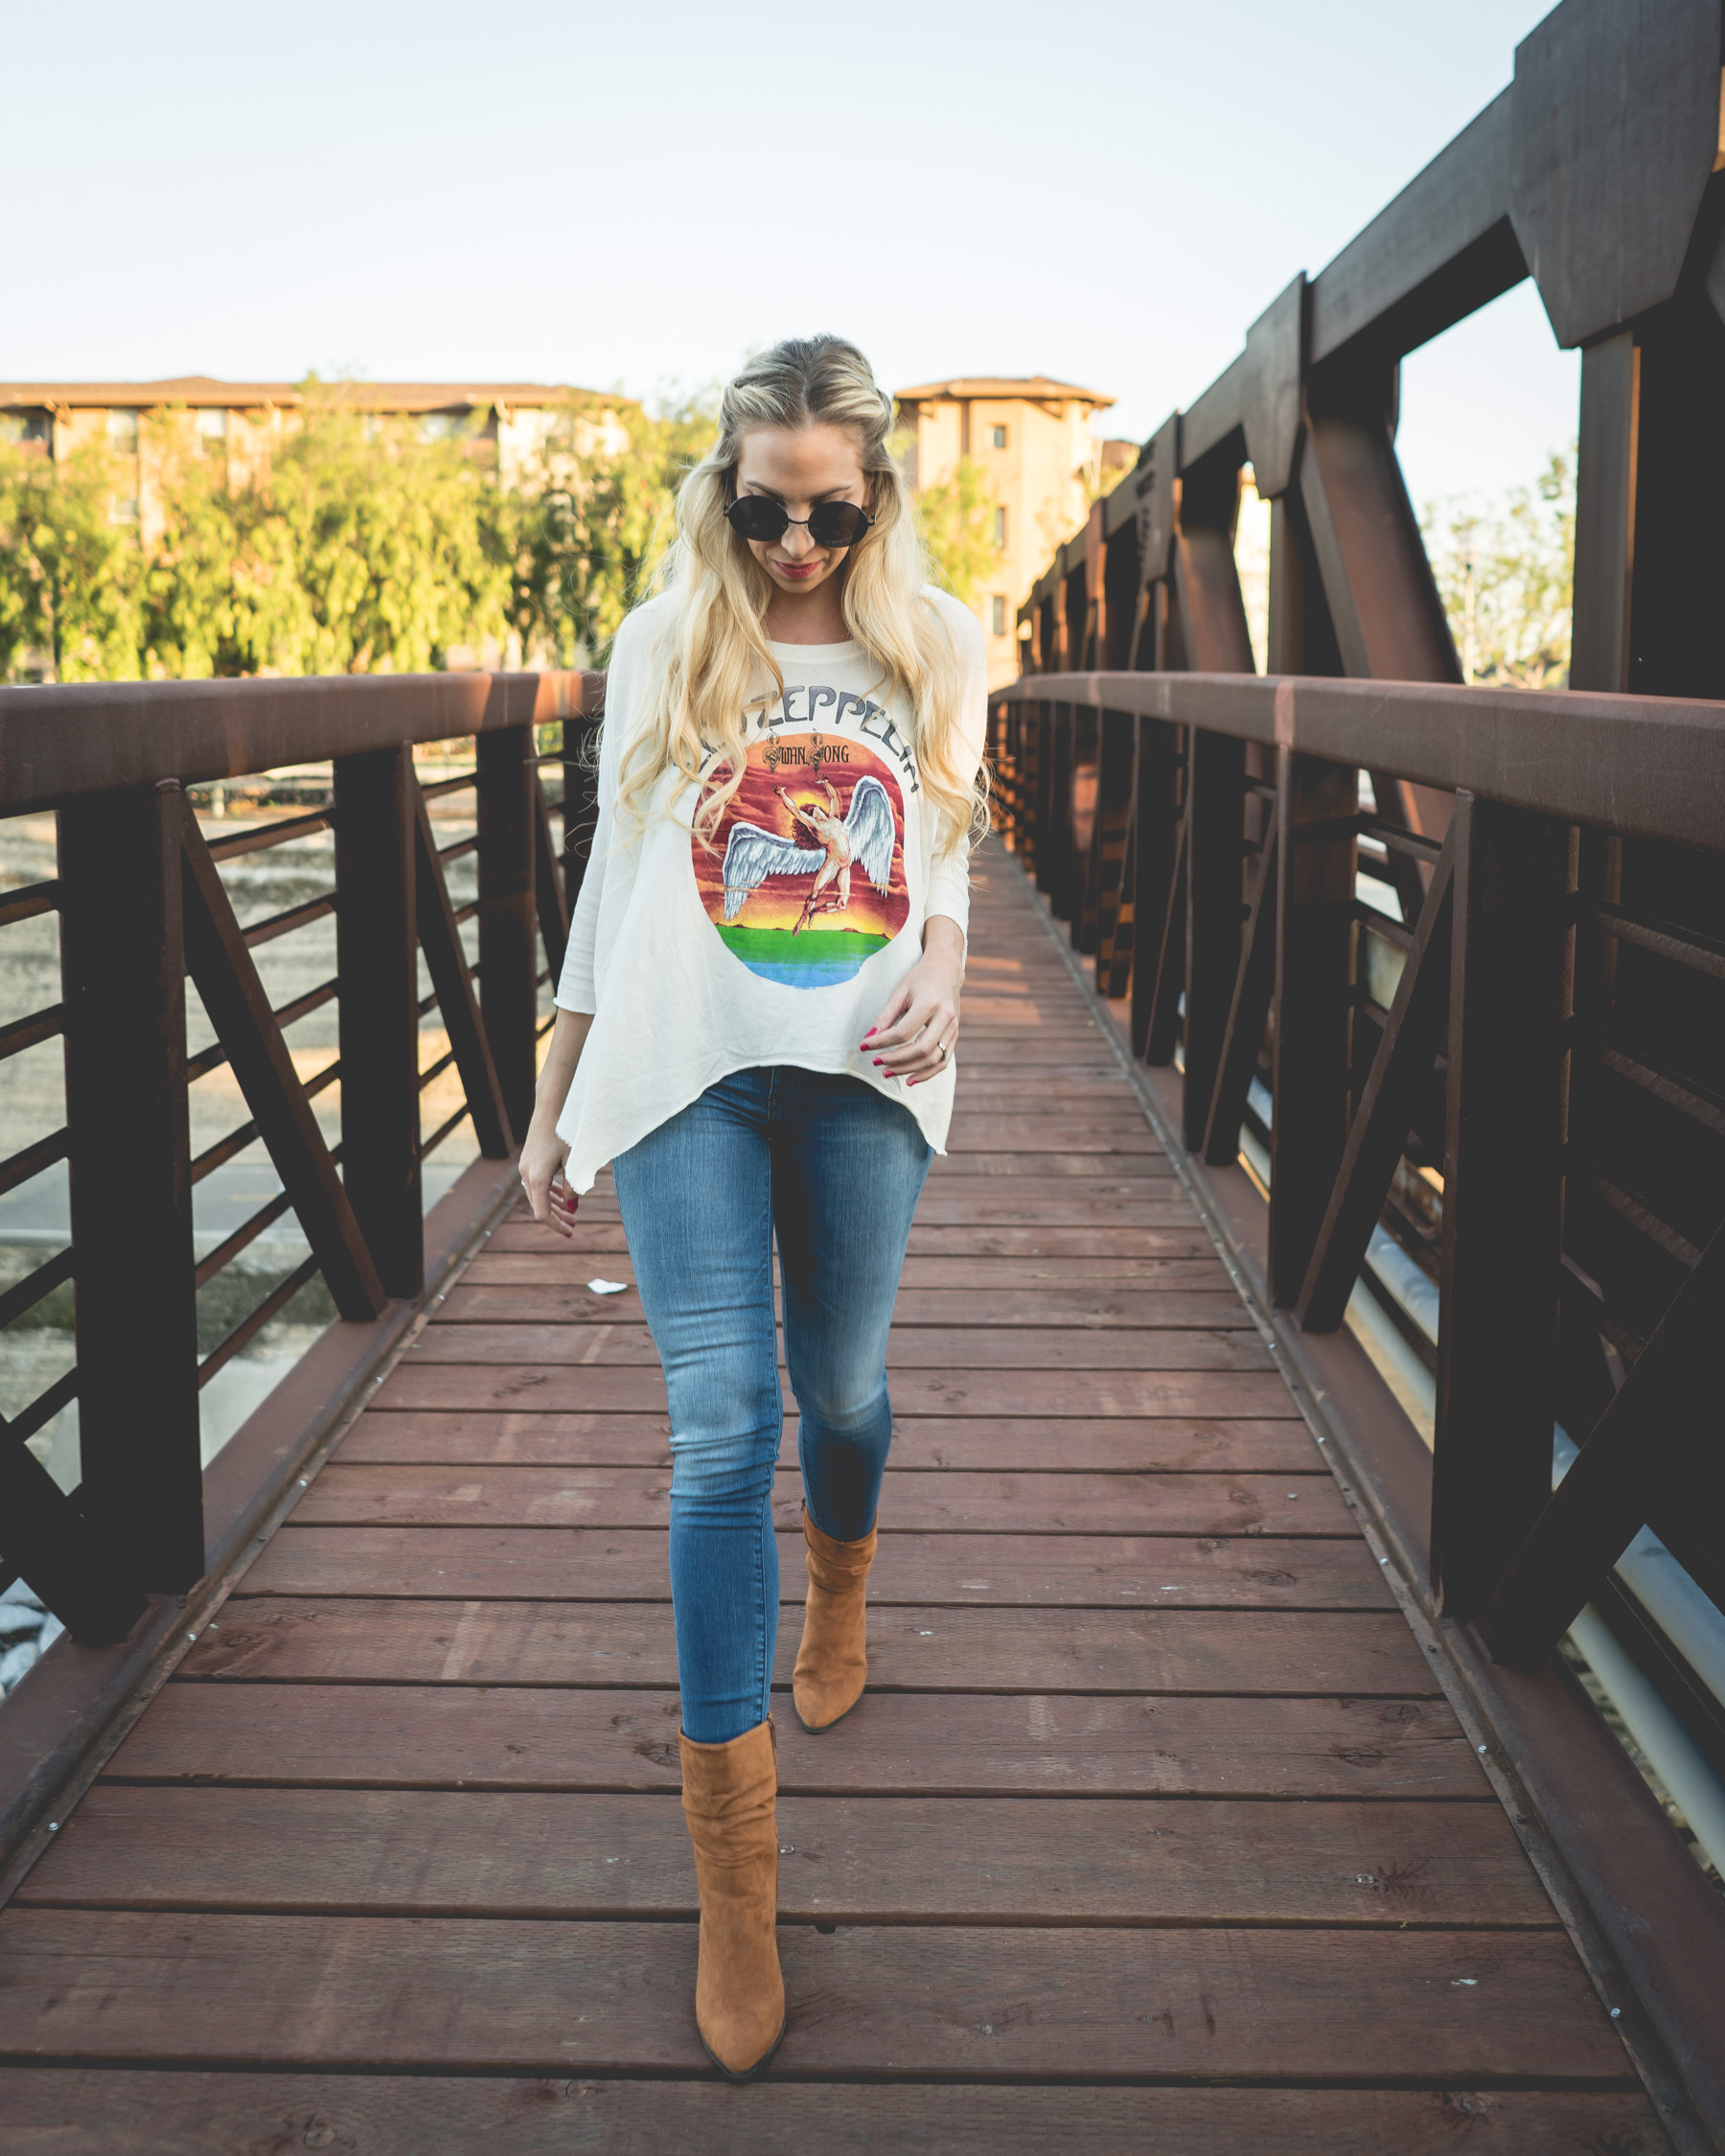 brandi-matthews-rock-rouge-hippie-shirt-2